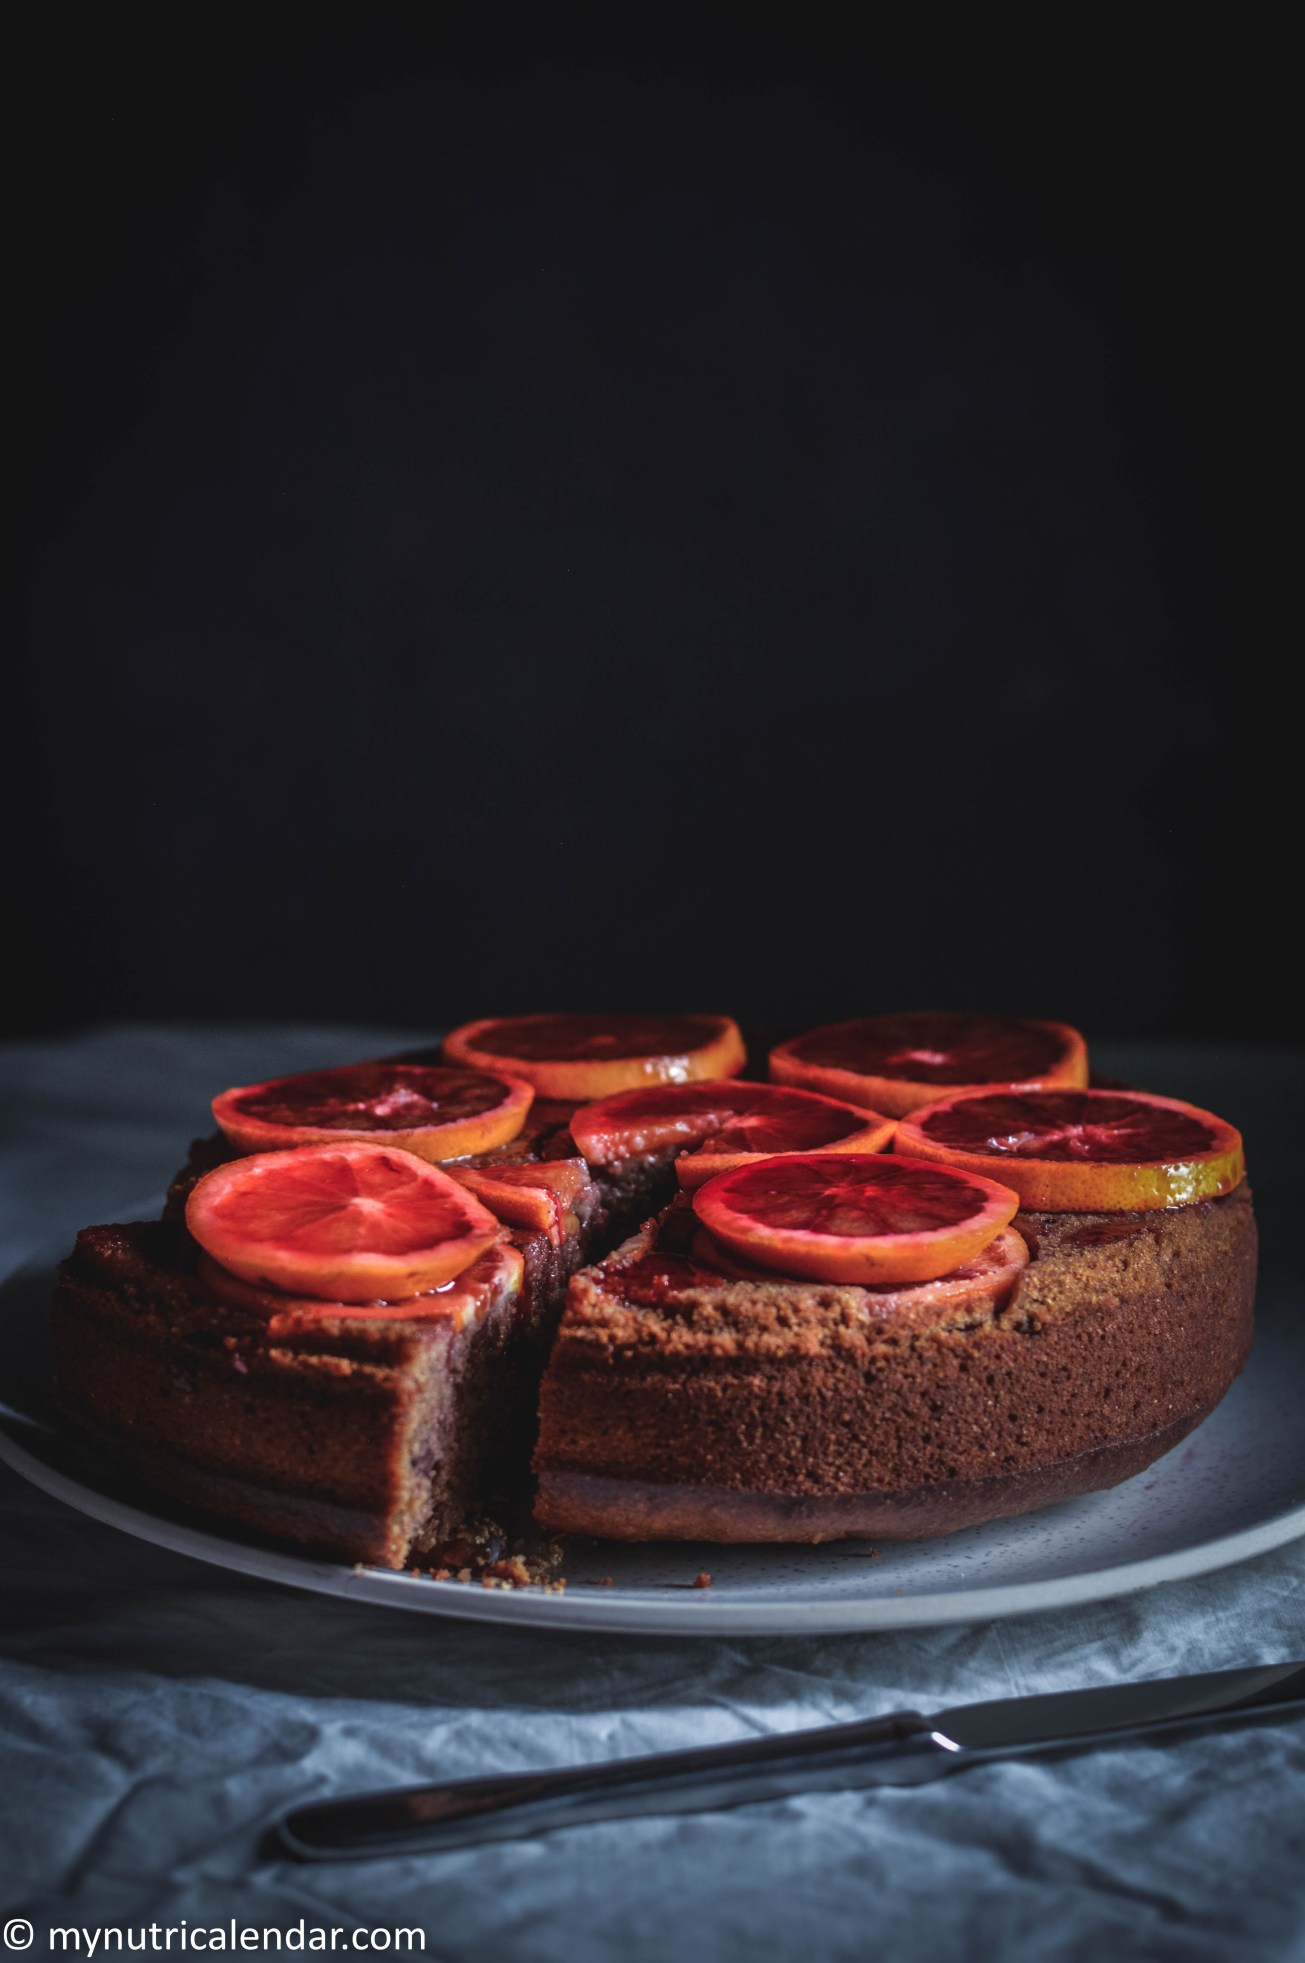 blood-orange-cake-chocolate-chips-raisins-no-sugar-6